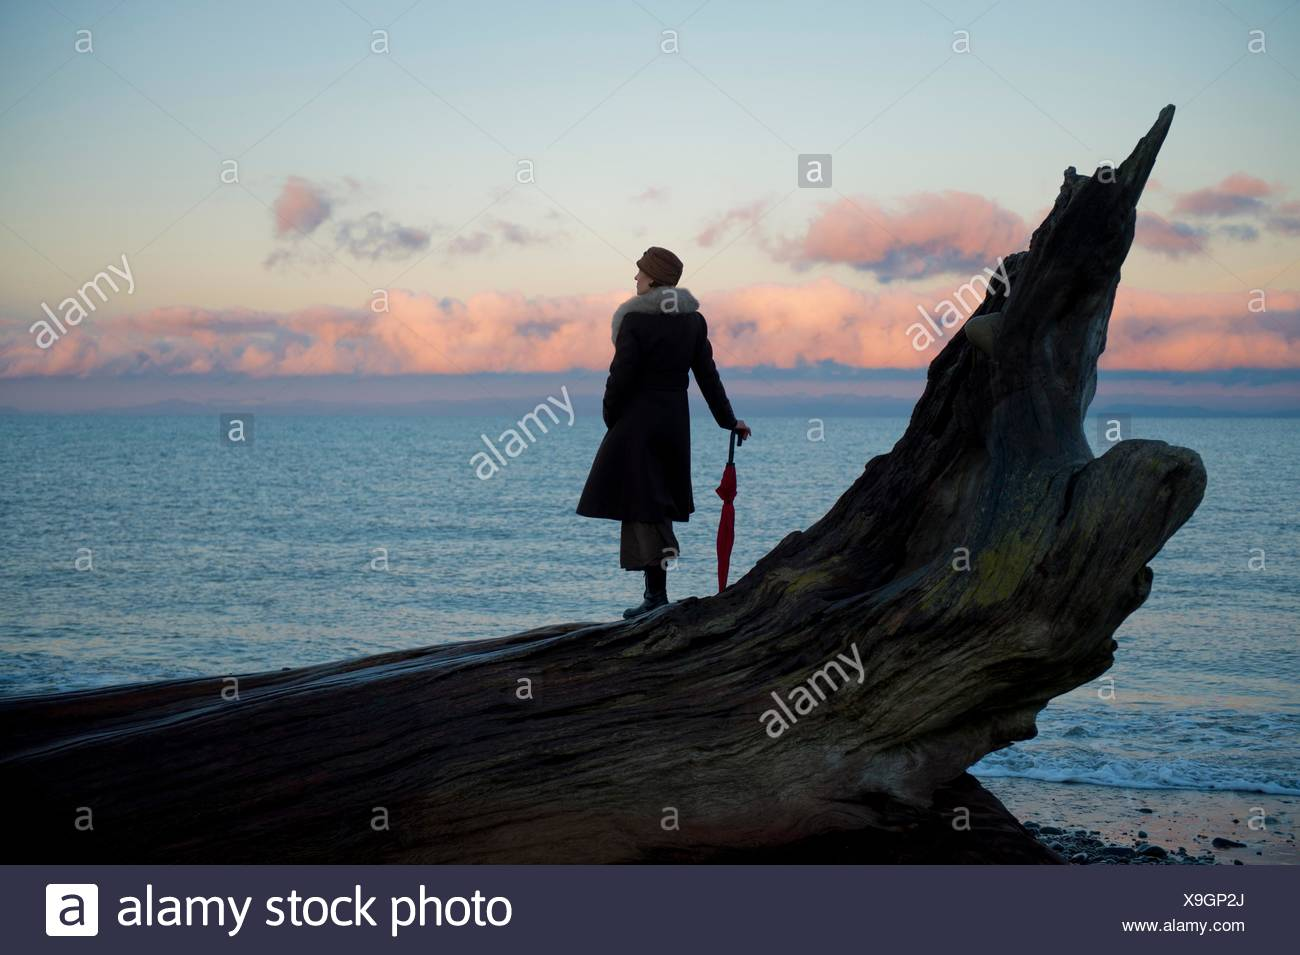 Woman leaning on umbrella standing on large driftwood tree trunk on beach - Stock Image